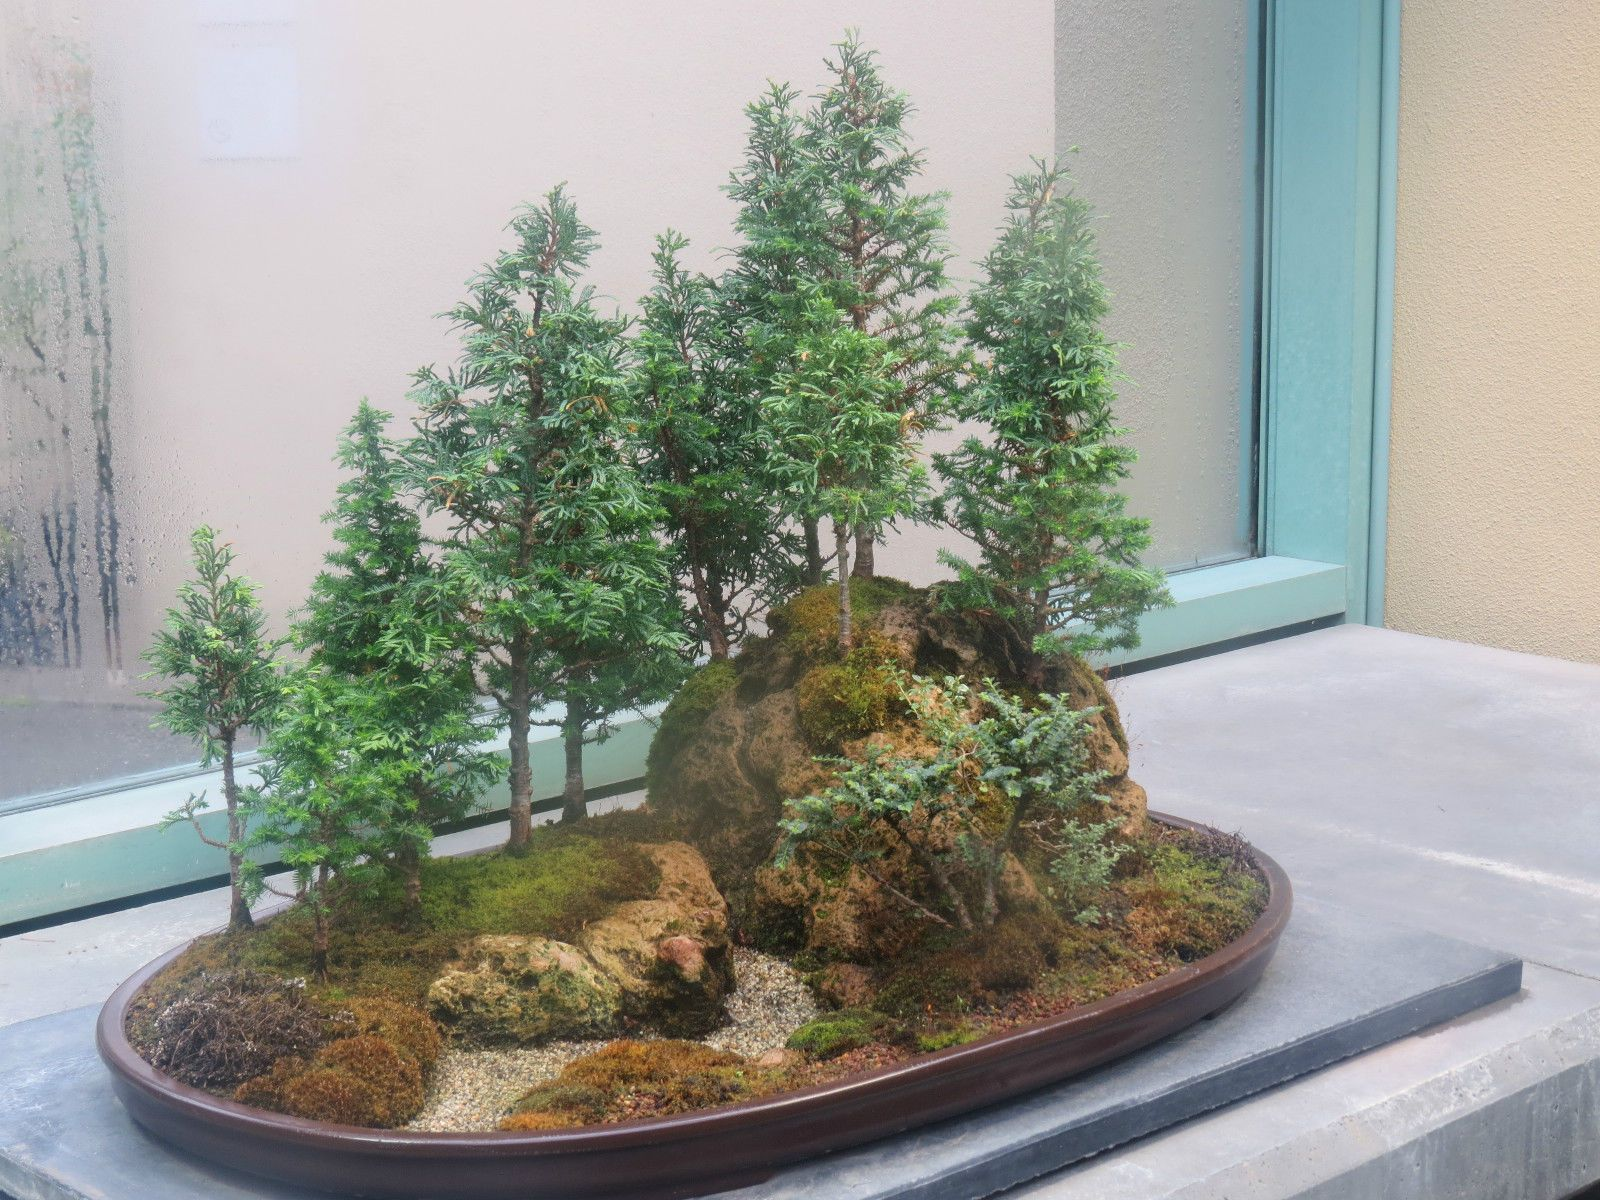 Rare Redwood Bonsai Japanese Redwood Bonsai Tree Seeds Uk Stock Ebay Redwood Bonsai Bonsai Tree Bonsai Tree Types